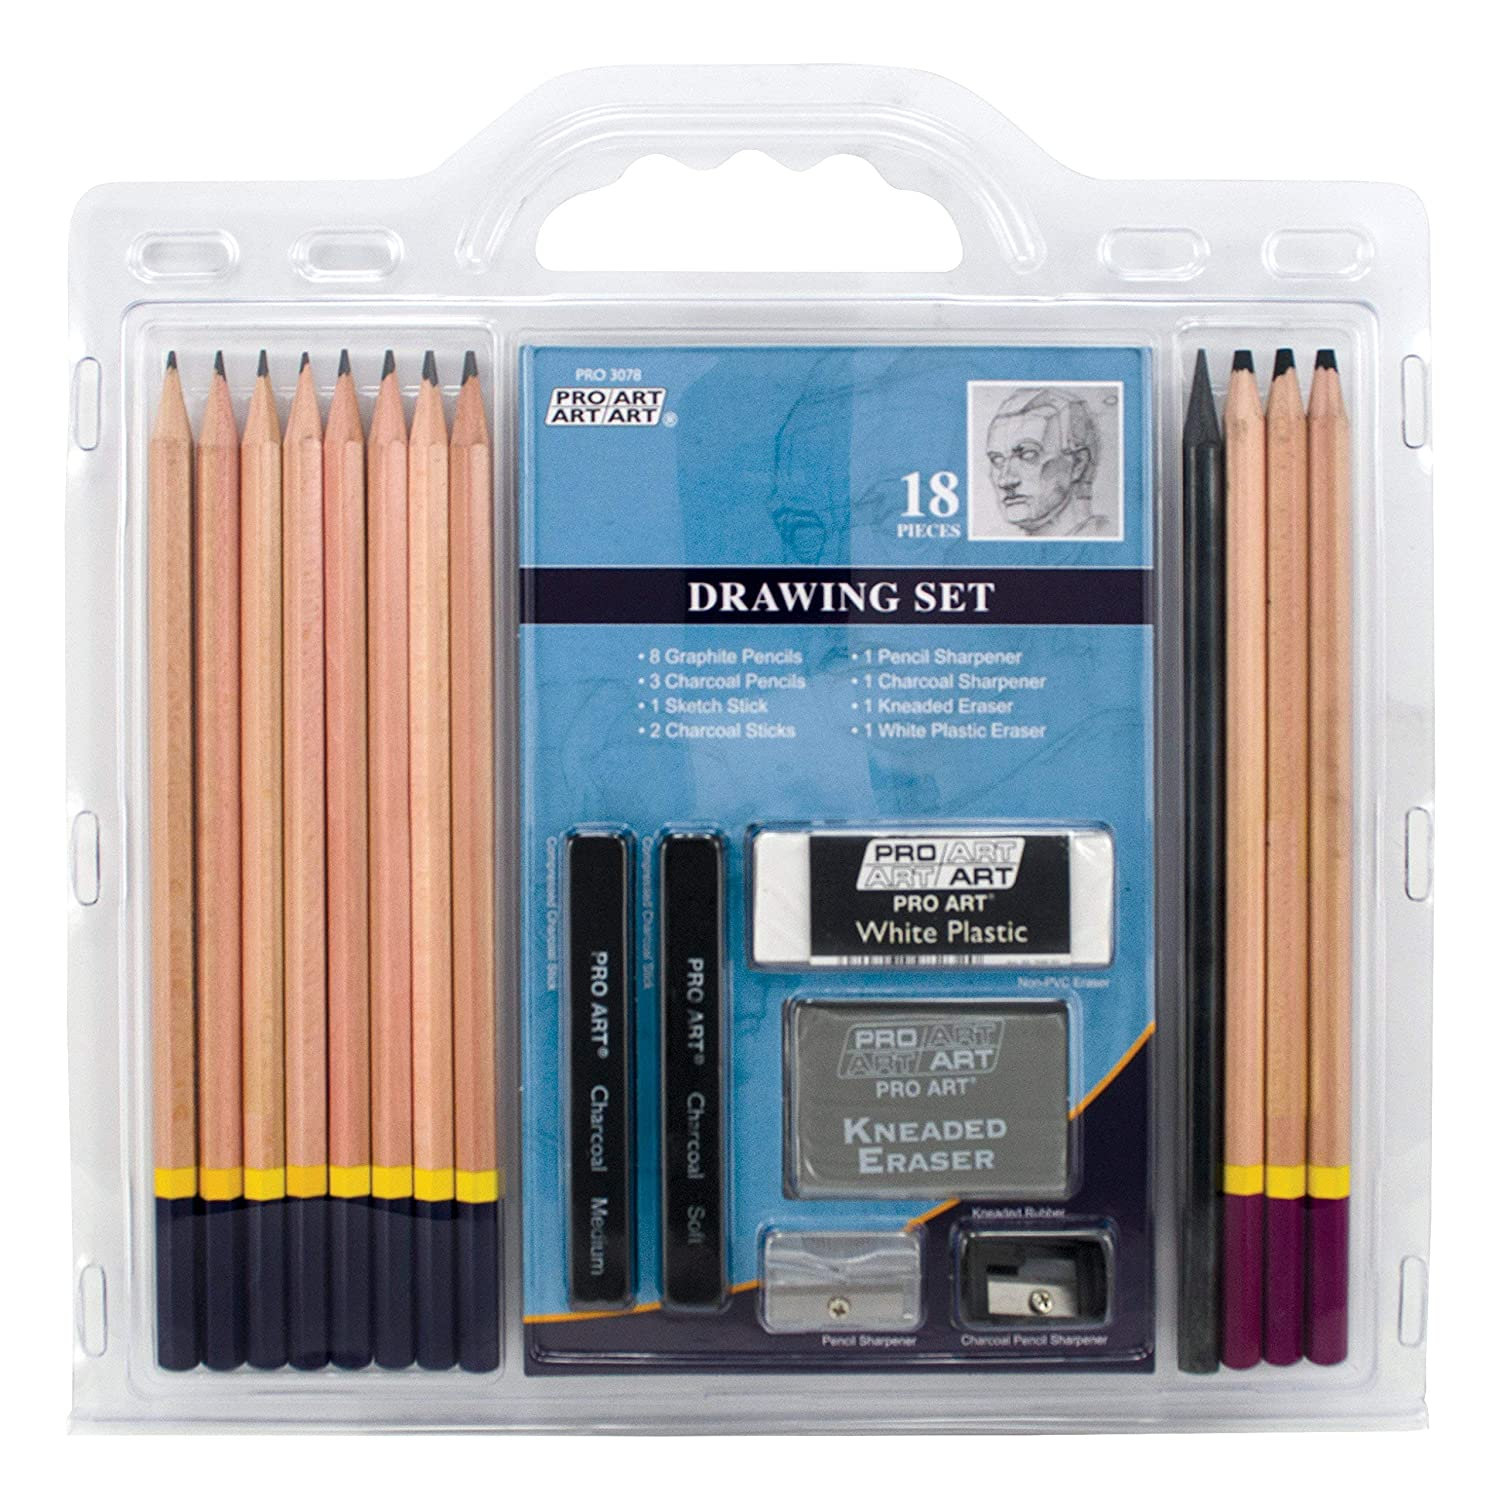 Pro Art Sketch And Draw Pencil 18 Piece